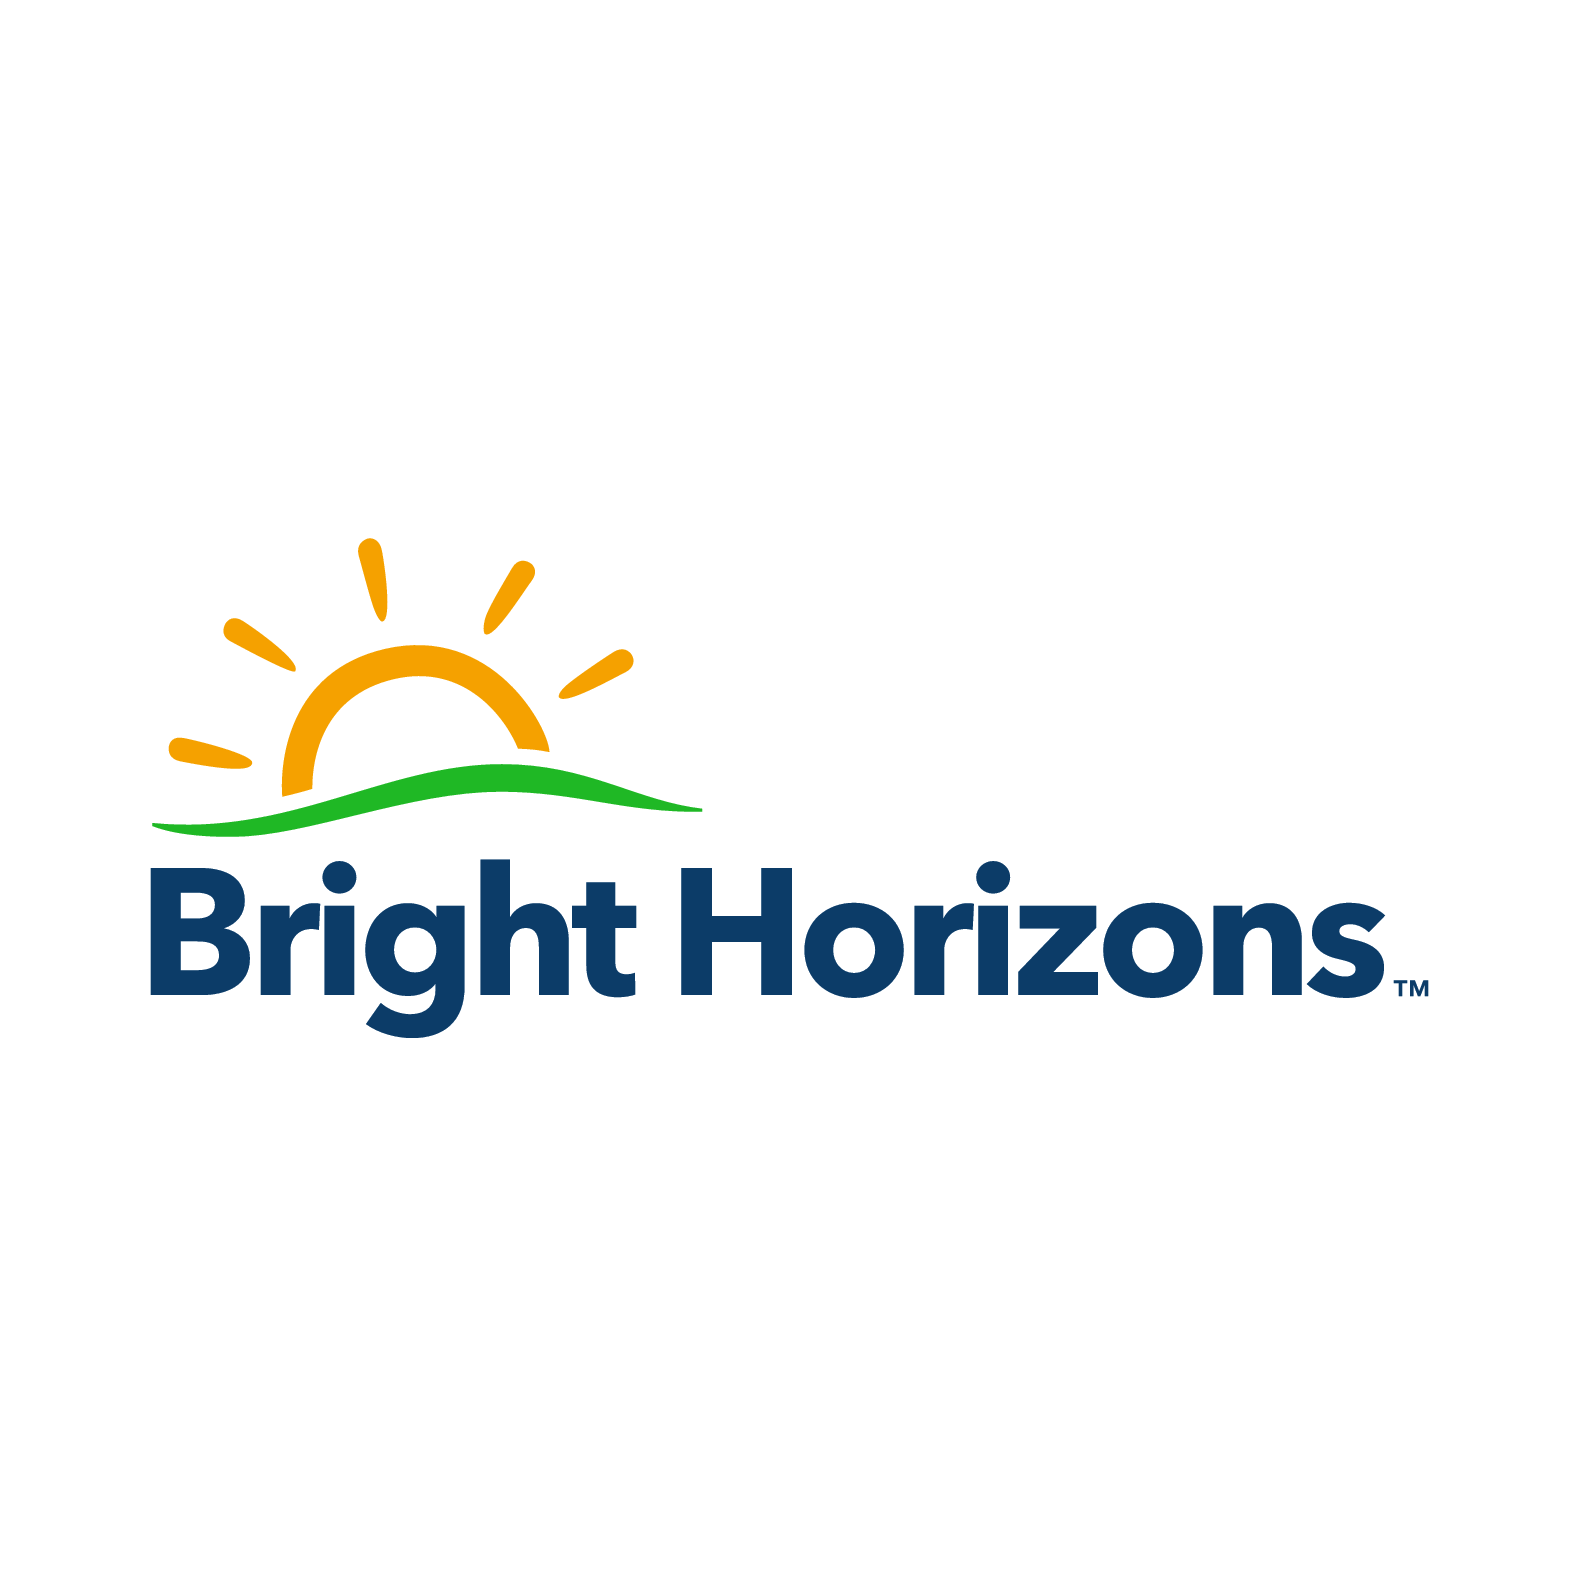 Bright Horizons Basildon Day Nursery and Preschool - Basildon, Essex SS14 3DG - 03339 201649 | ShowMeLocal.com